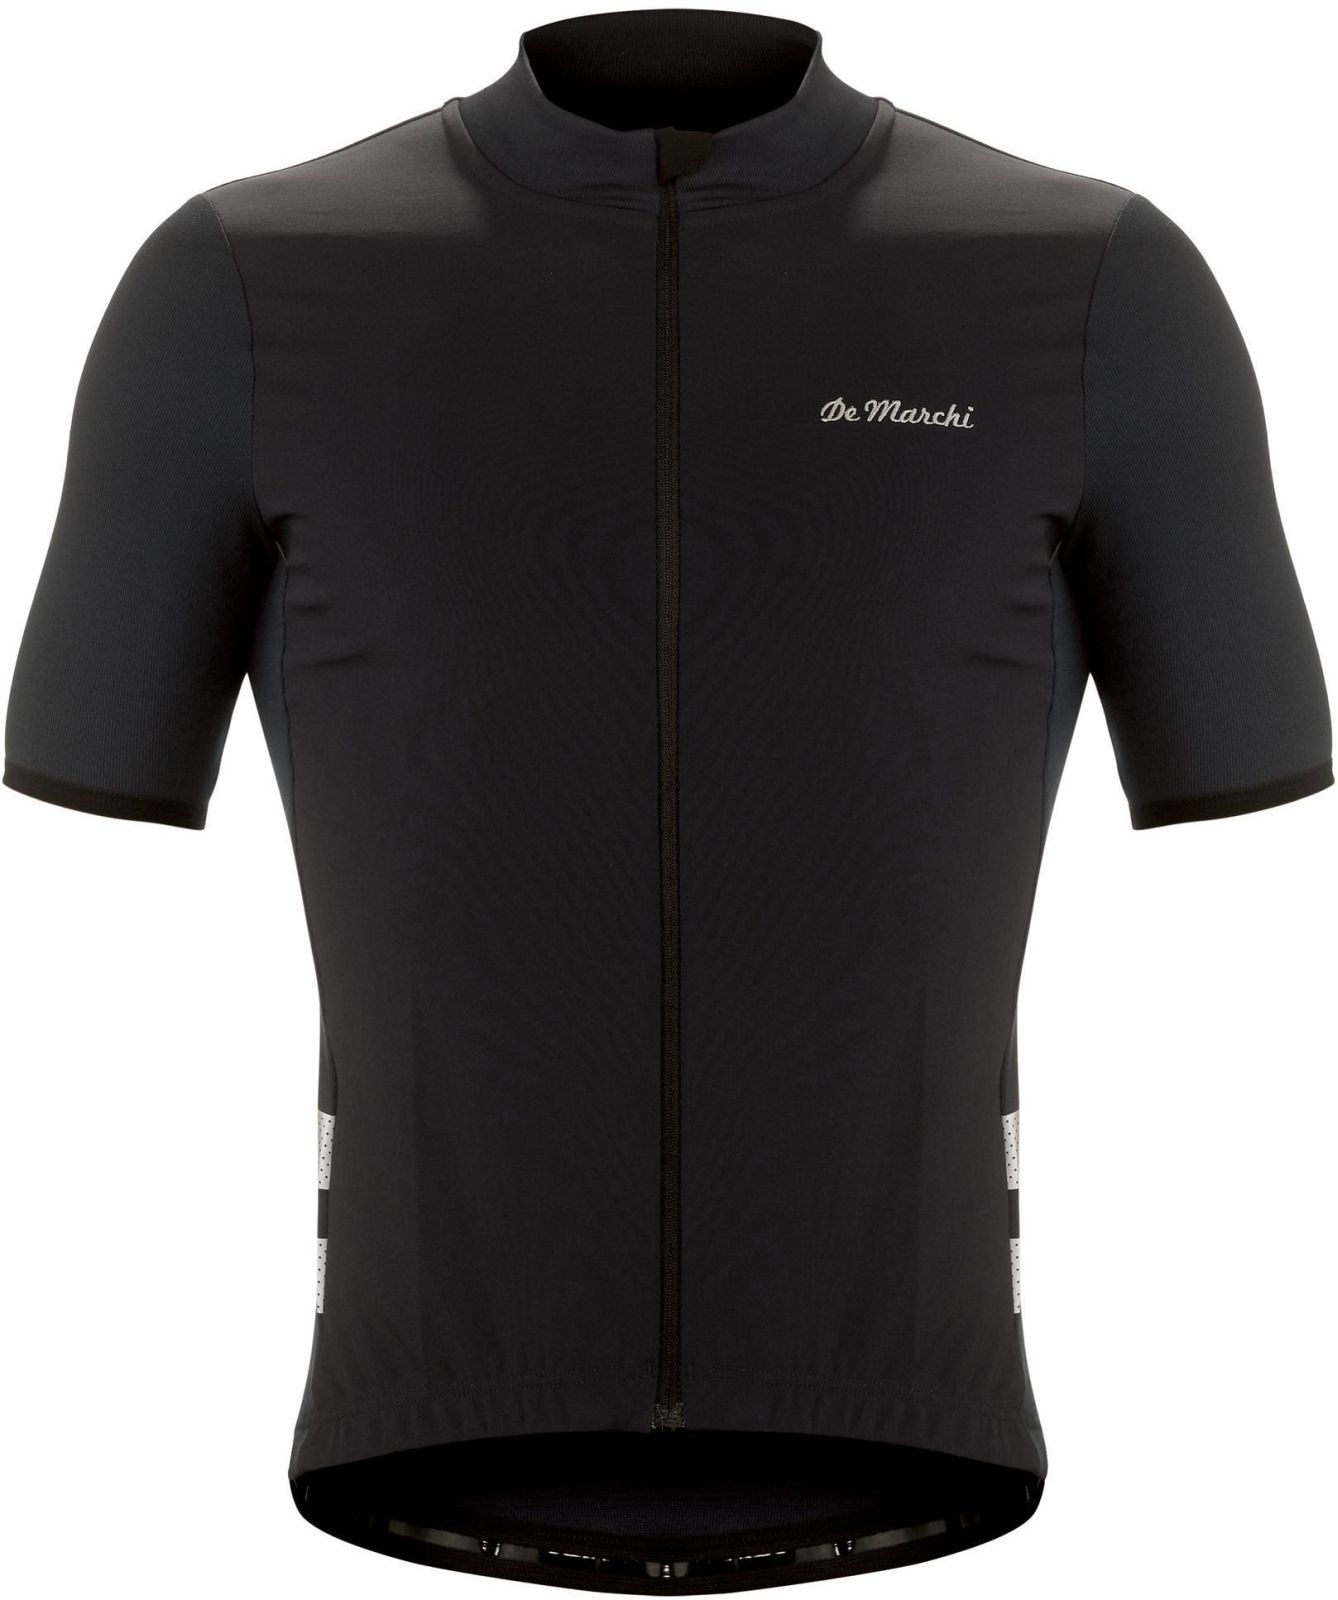 De Marchi Cortina Wind Jersey  - black XL